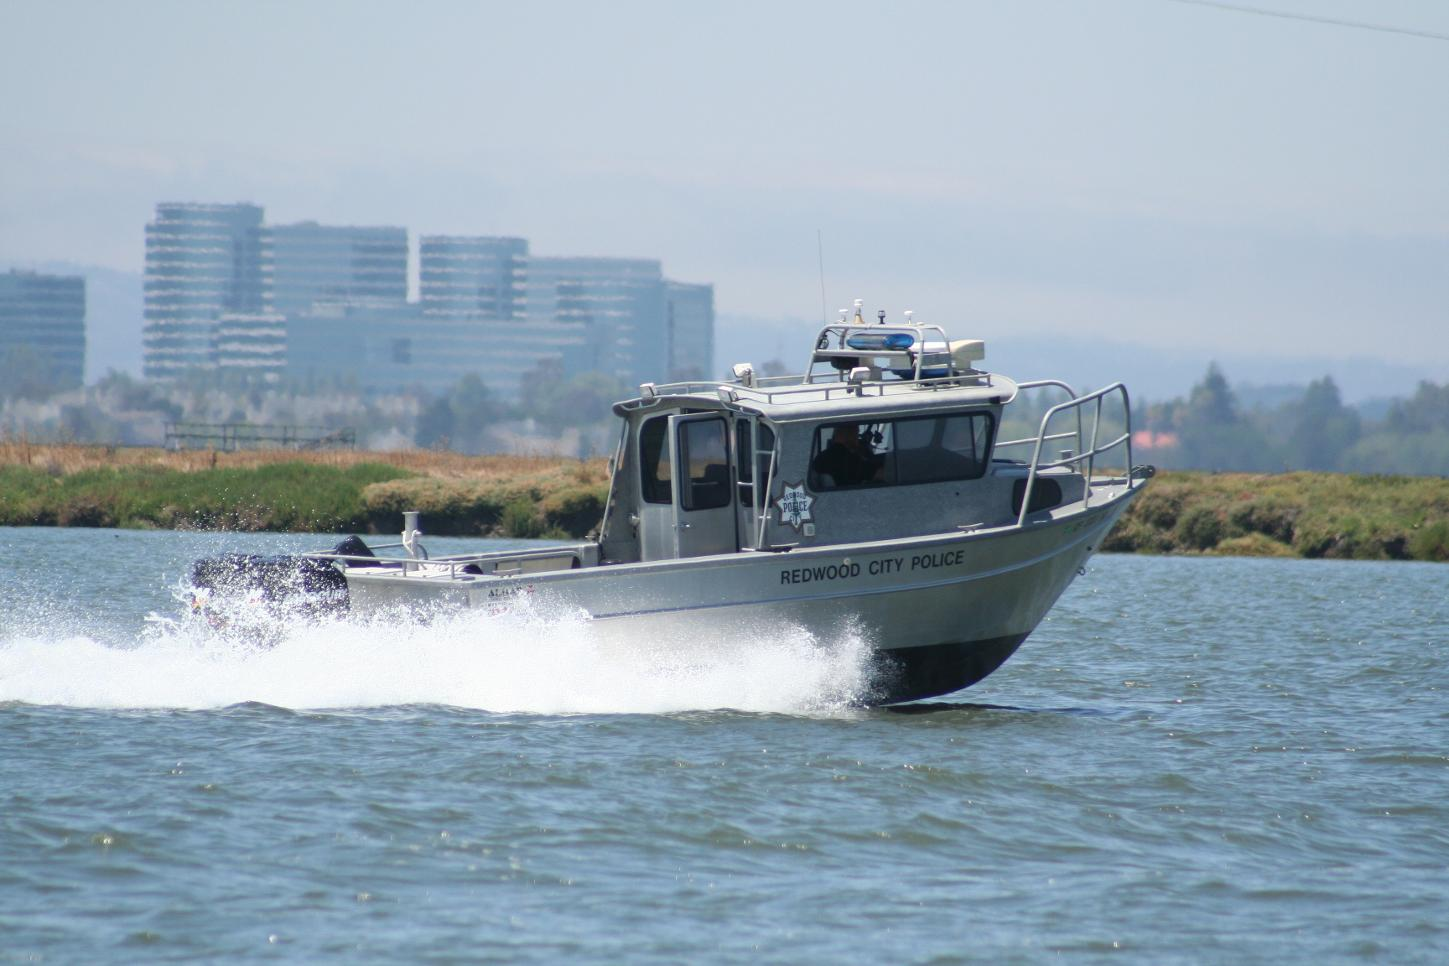 Marine Unit-Boat-Action